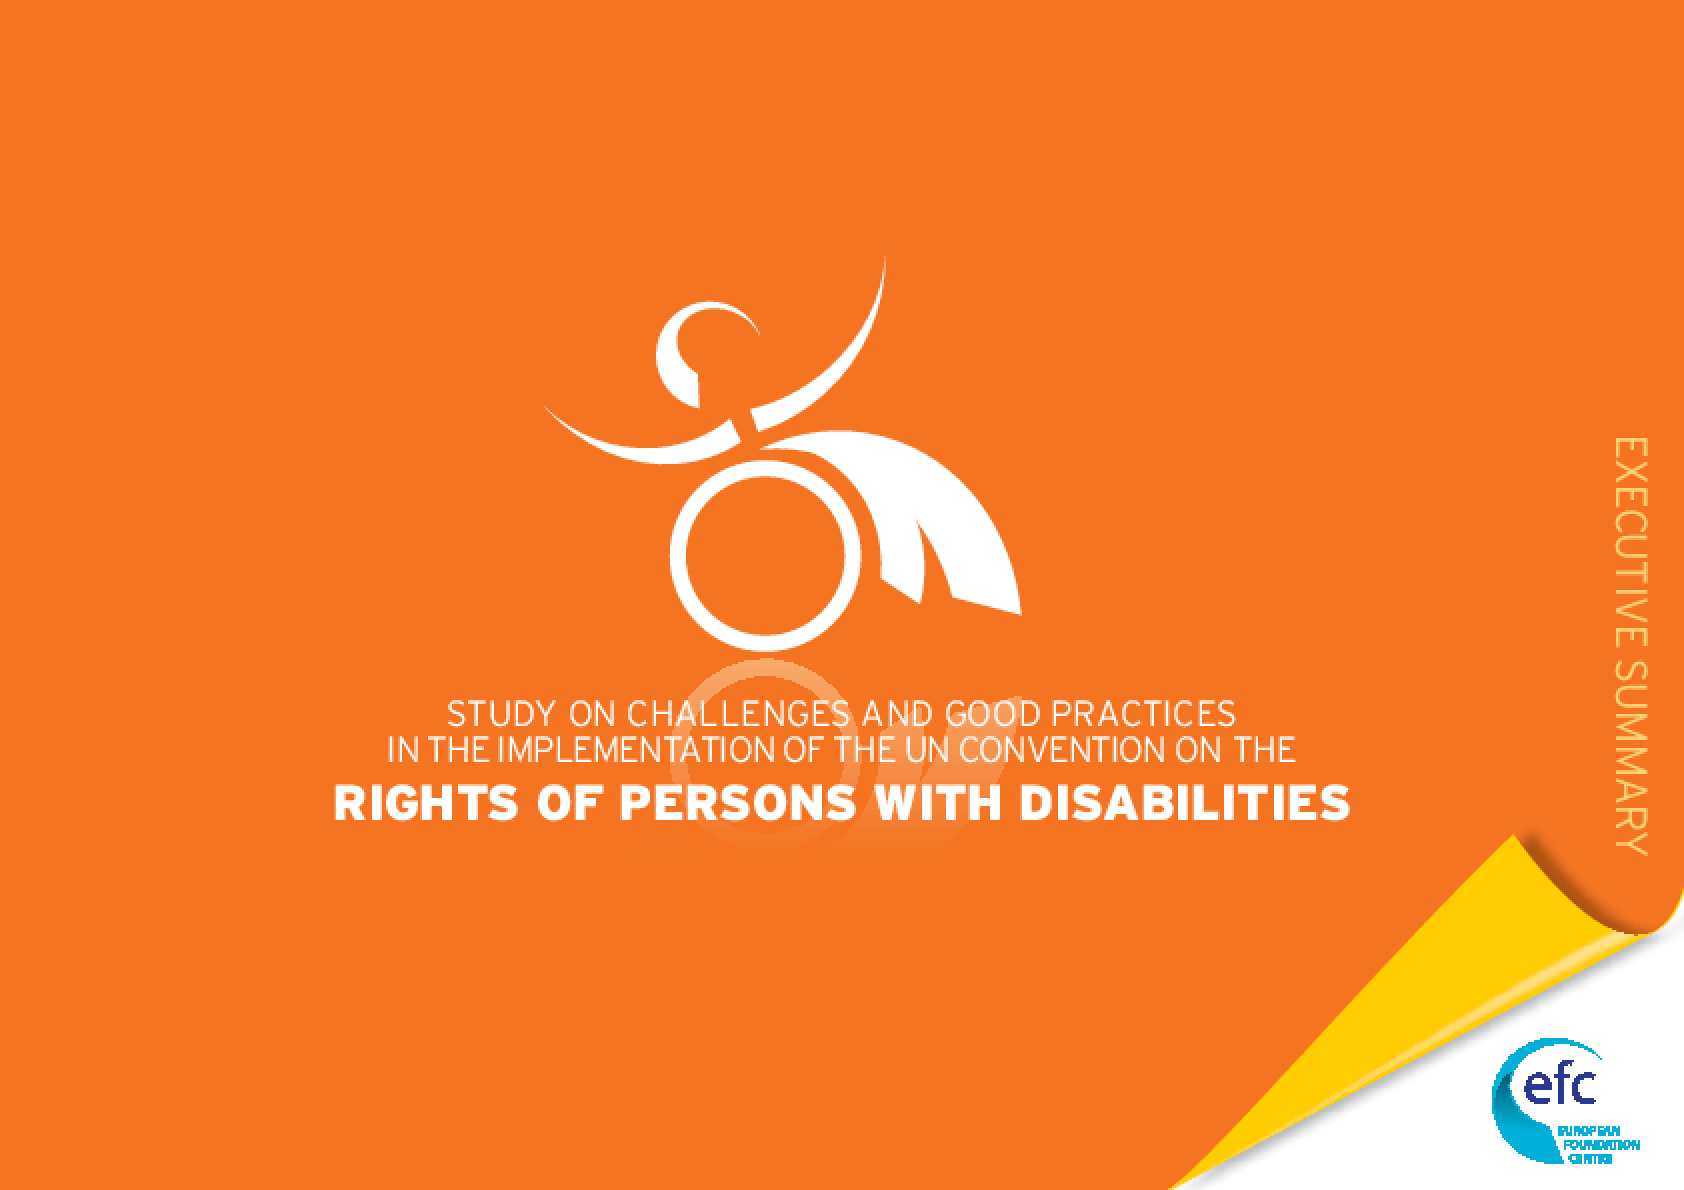 Study on Challenges and Good Practices in the Implementation of the UN Convention on the Rights of Persons with Disabilities : Executive Summary